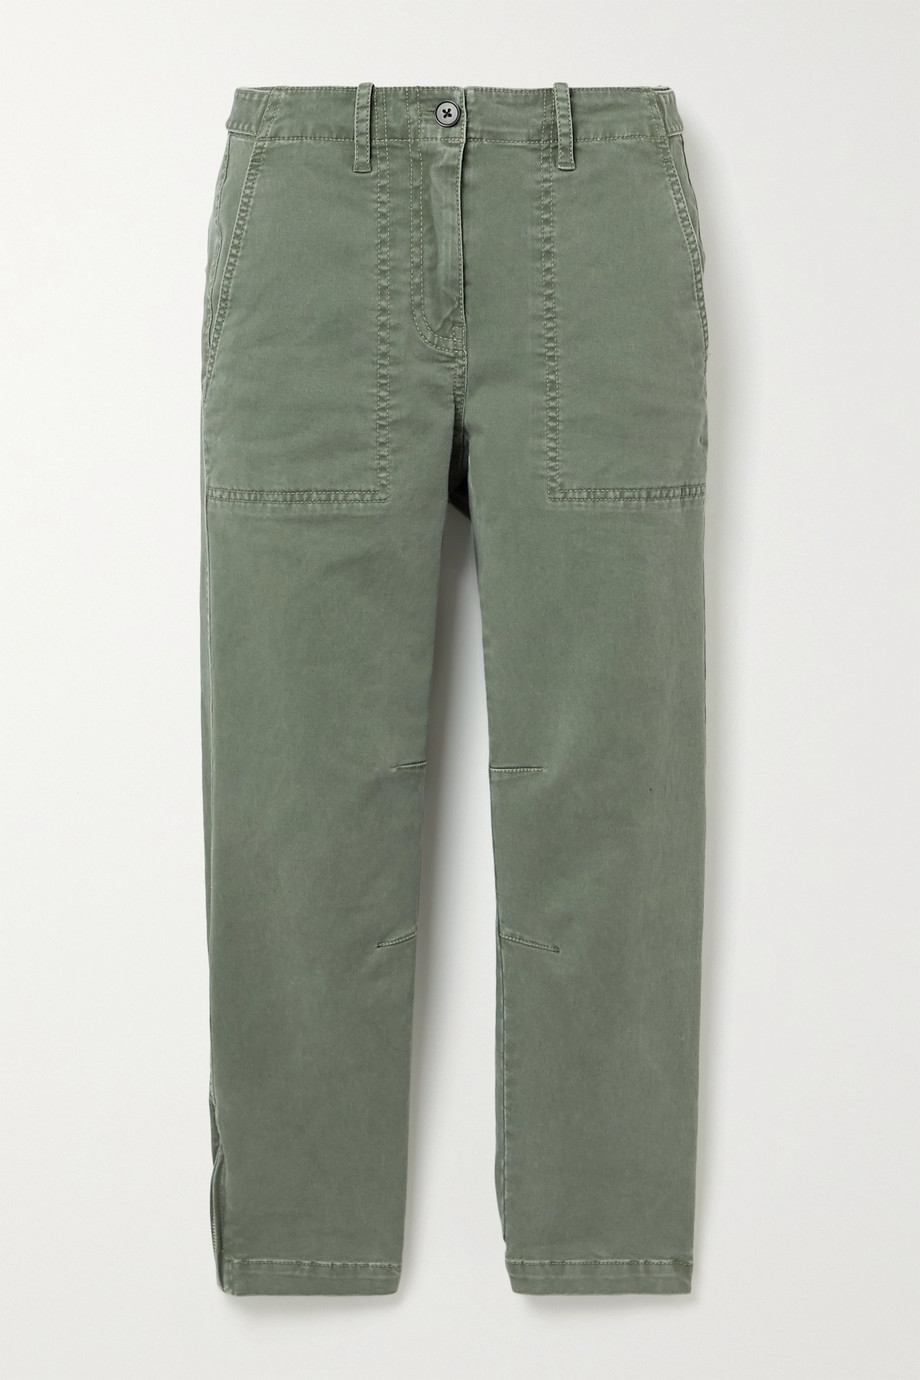 Derek Lam 10 Crosby Cropped cotton-twill tapered pants